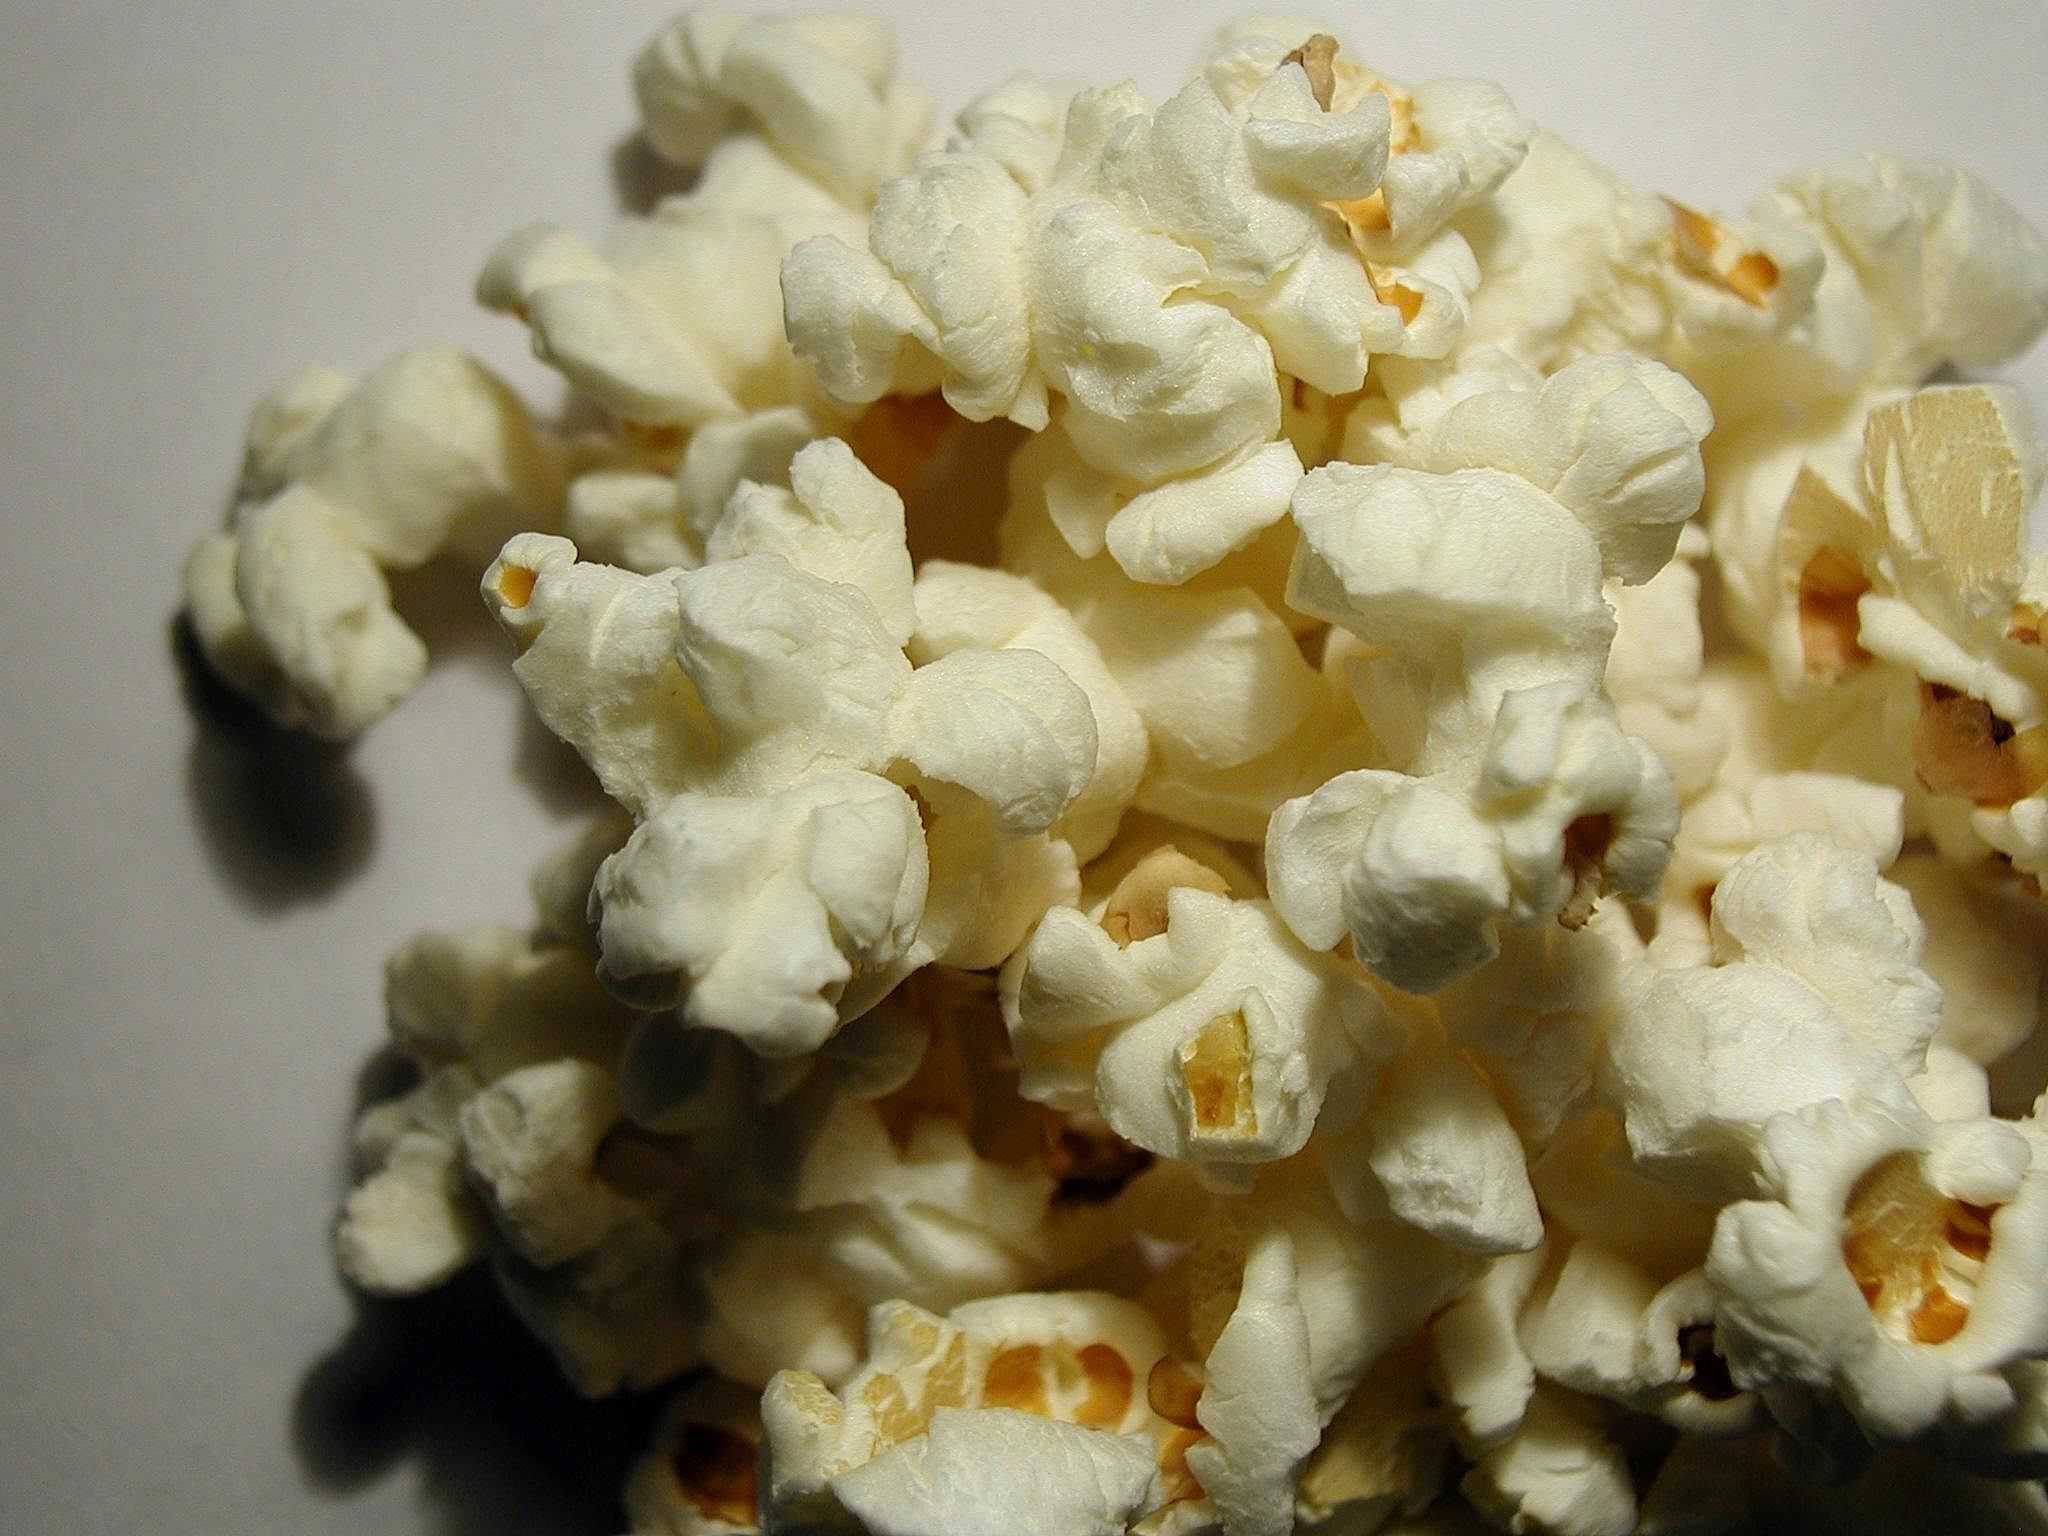 Free picture: popcorn, details, image